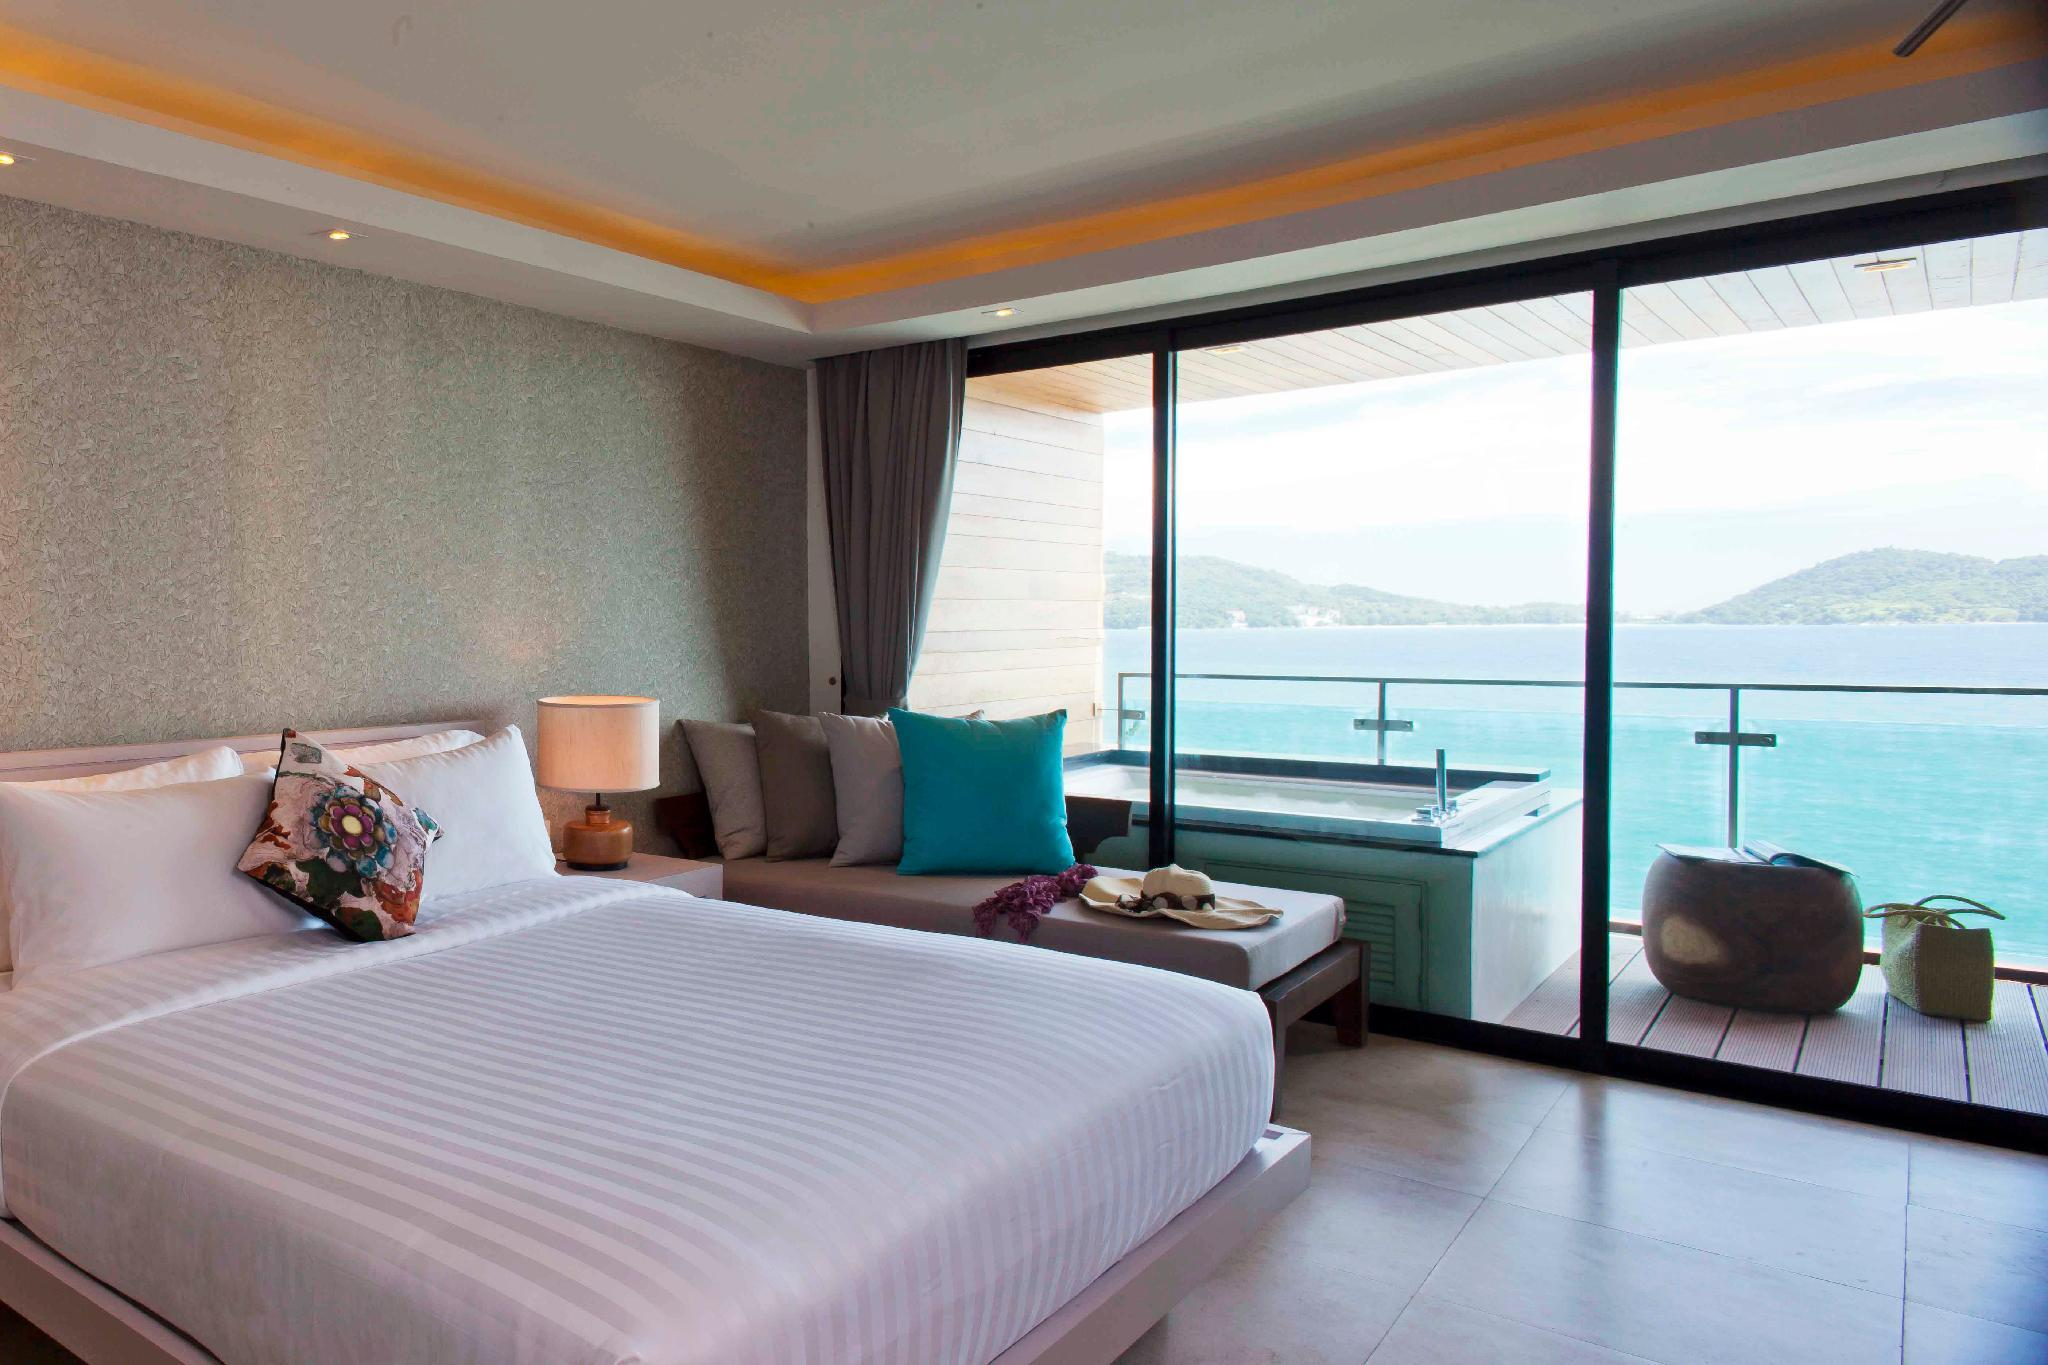 Premium Deluxe Sea View Room with Jacuzzi